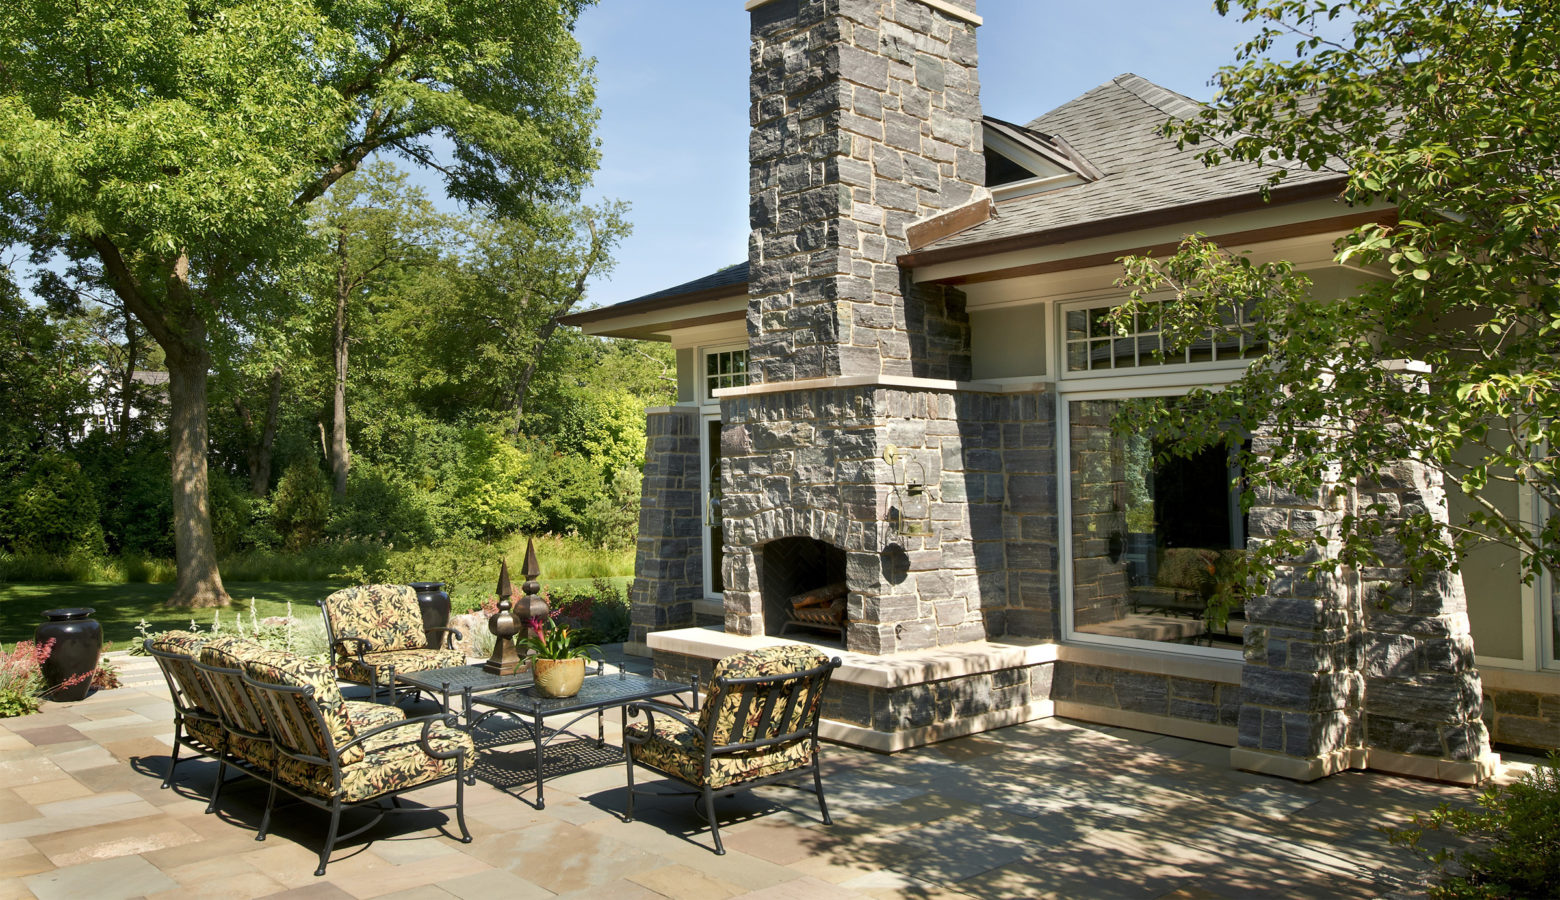 Inspiring Outdoor Living Spaces Design Ideas To Turn Your